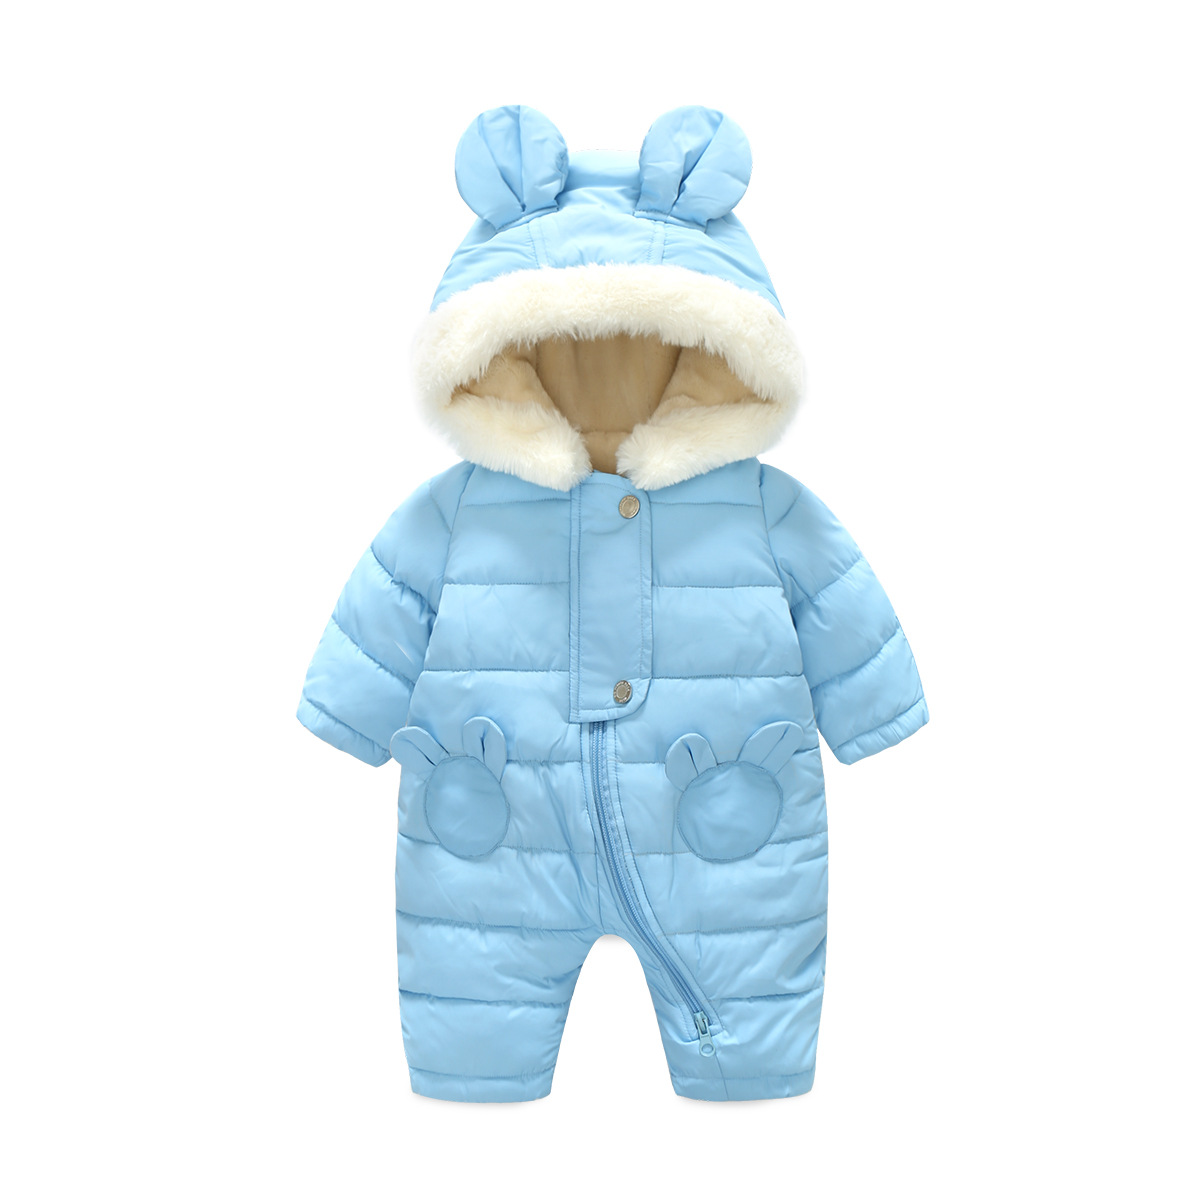 2017 NEW Baby Rompers Winter Thick Warm Baby boy girl Clothing Long Sleeve Hooded Jumpsuit Kids Newborn Outwear for 0-12M new baby rompers winter thick warm baby boy clothing long sleeve hooded jumpsuit kids newborn outwear for 0 12m